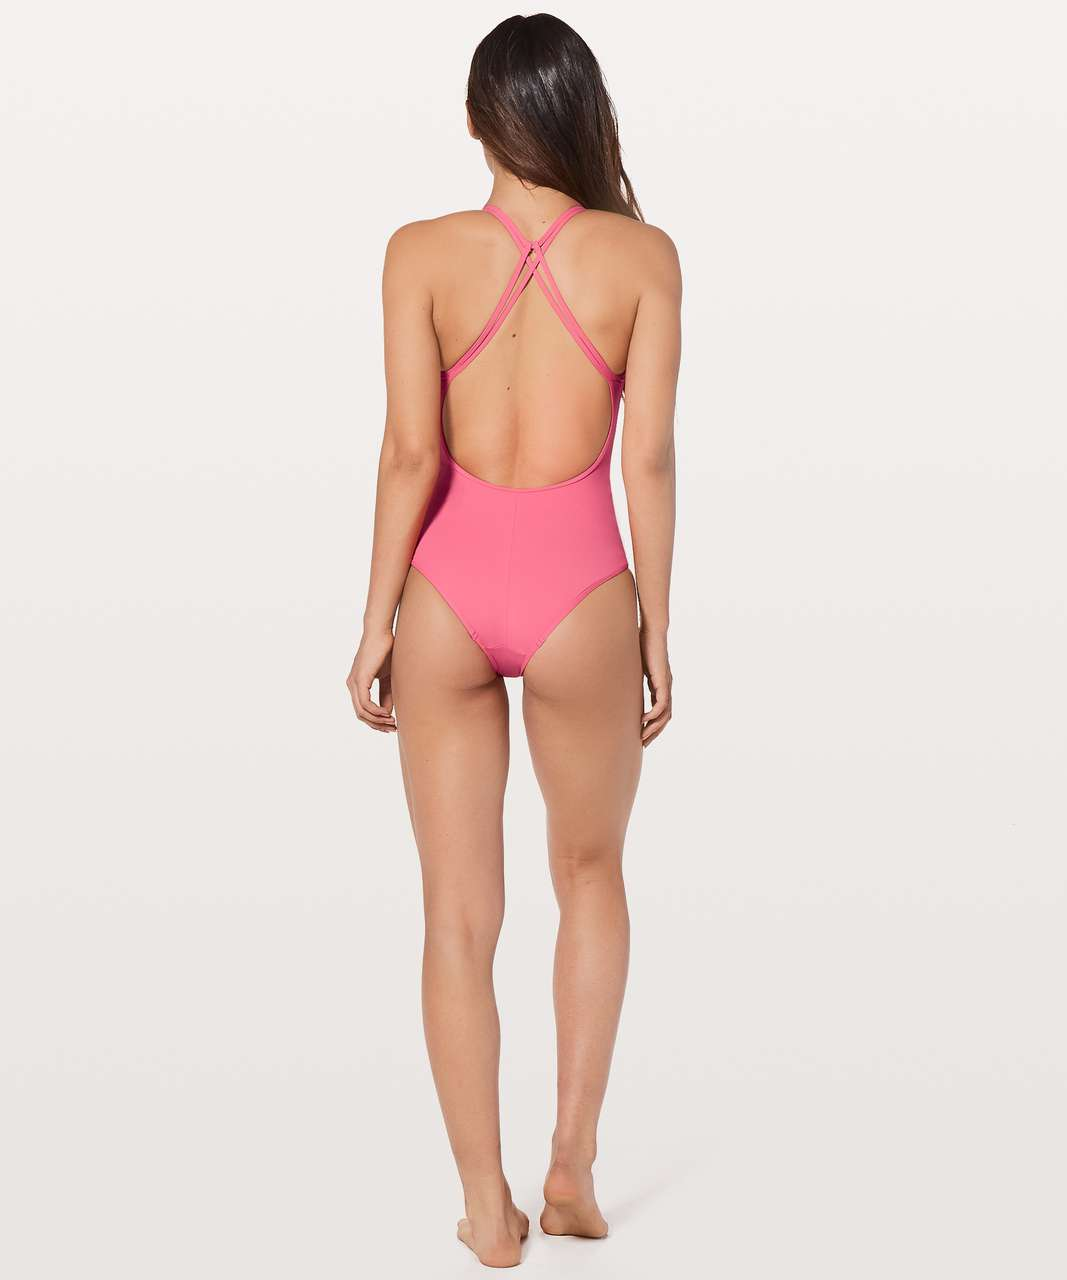 Lululemon Wave Wanderer One Piece - Glossy